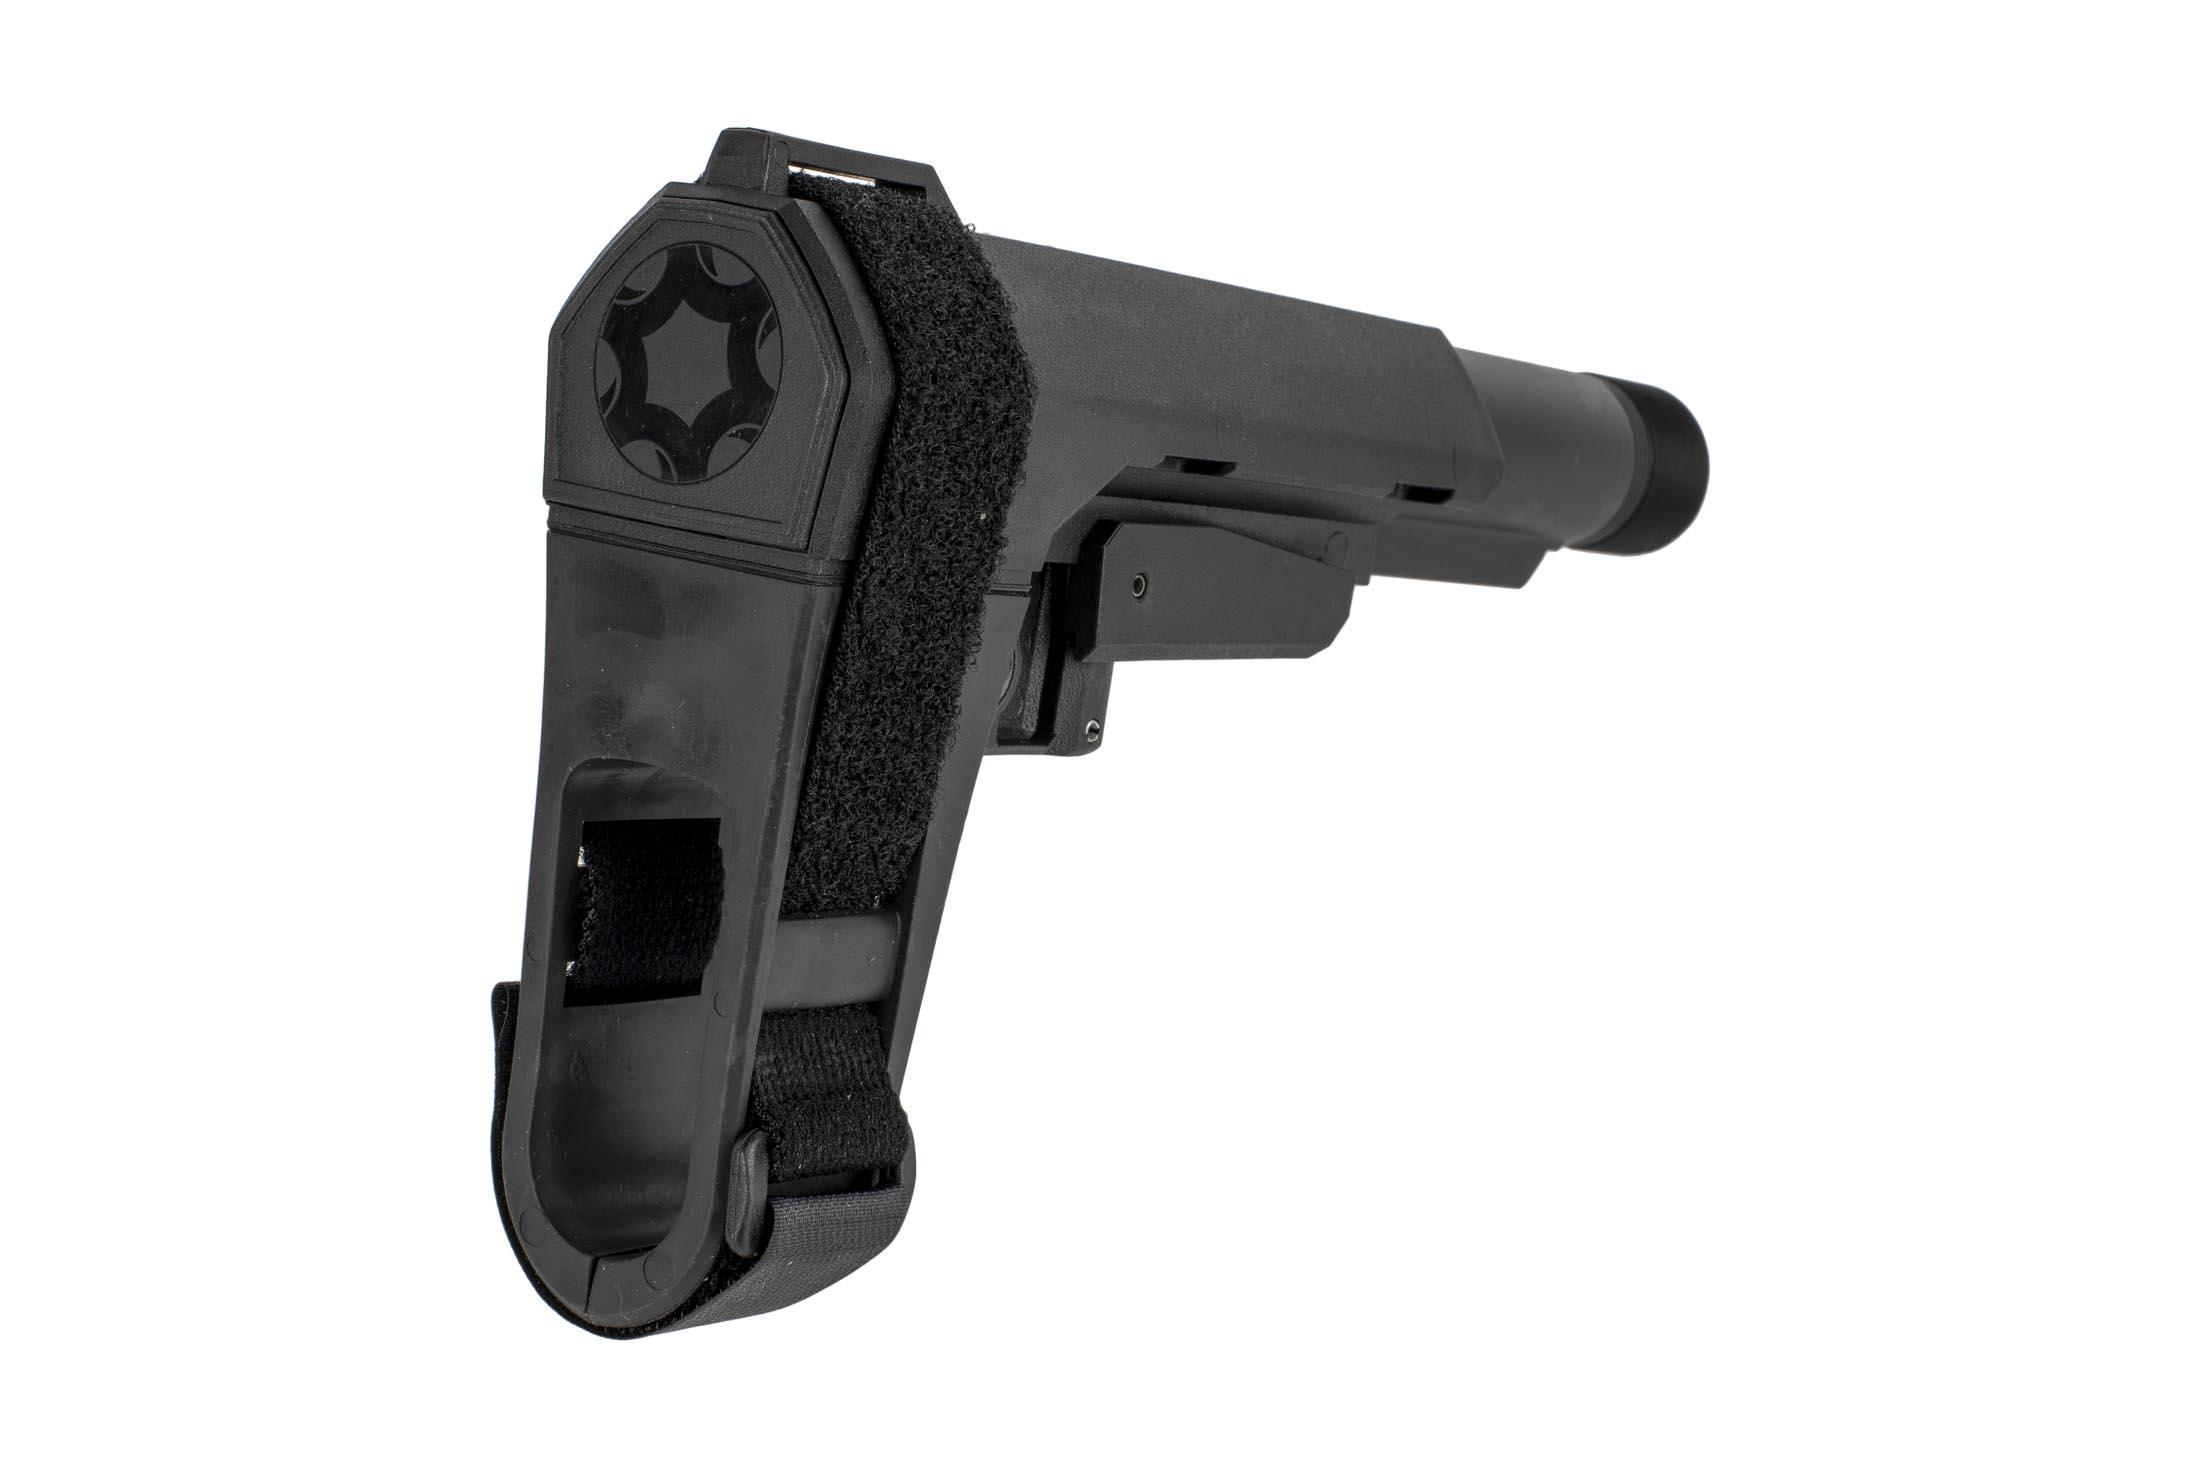 The CMMG RipBrace AR15 arm brace comes with a velcro strap to attach it to your arm